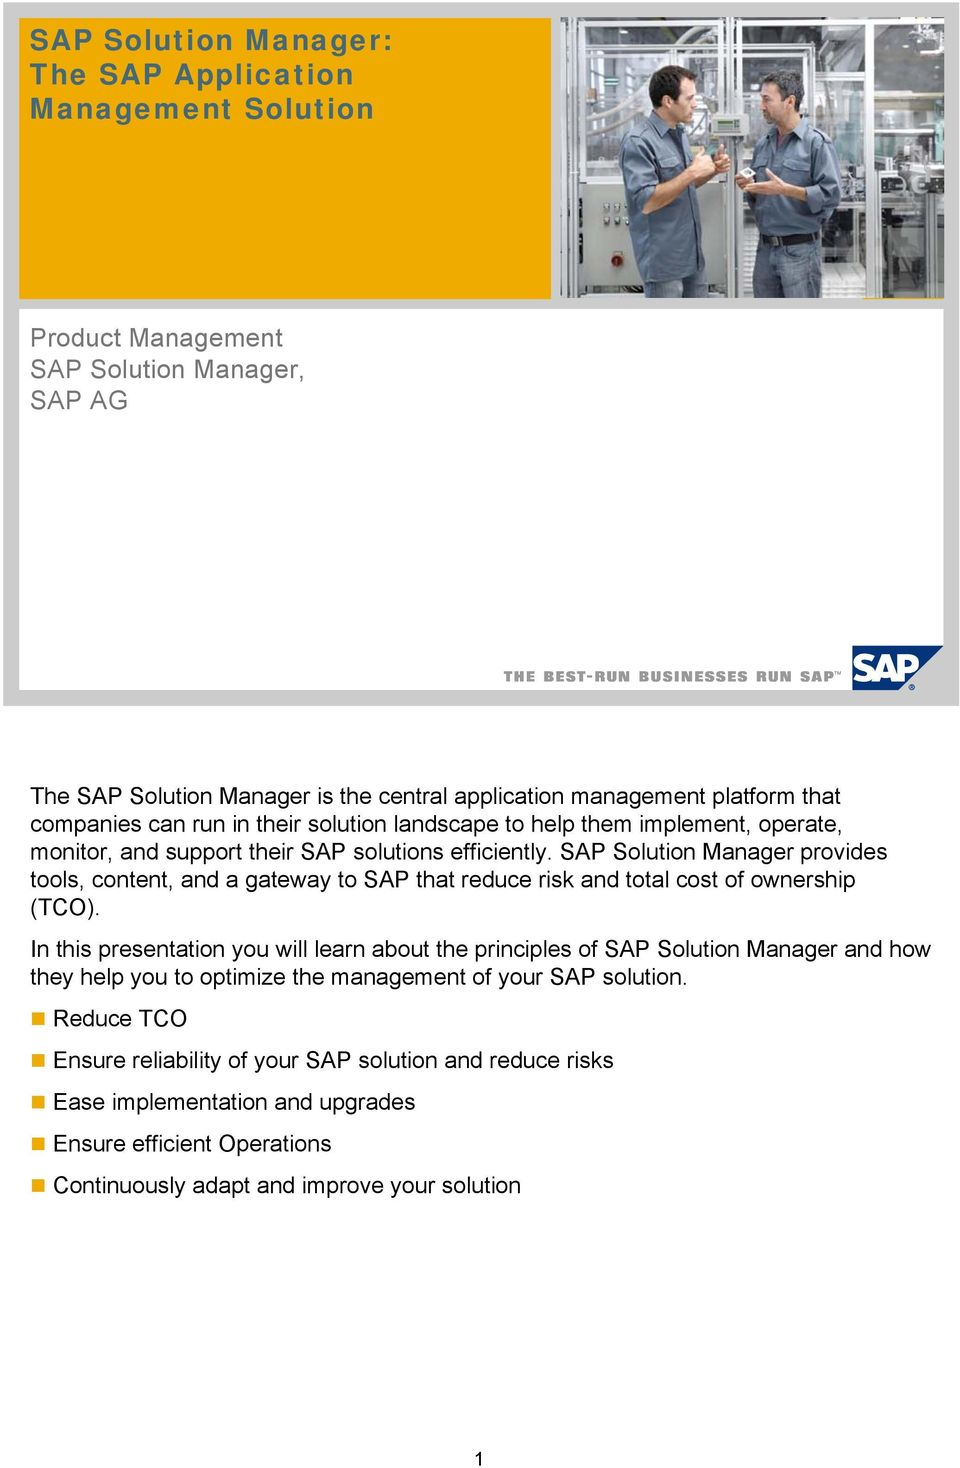 SAP Solution Manager provides tools, content, and a gateway to SAP that reduce risk and total cost of ownership (TCO).